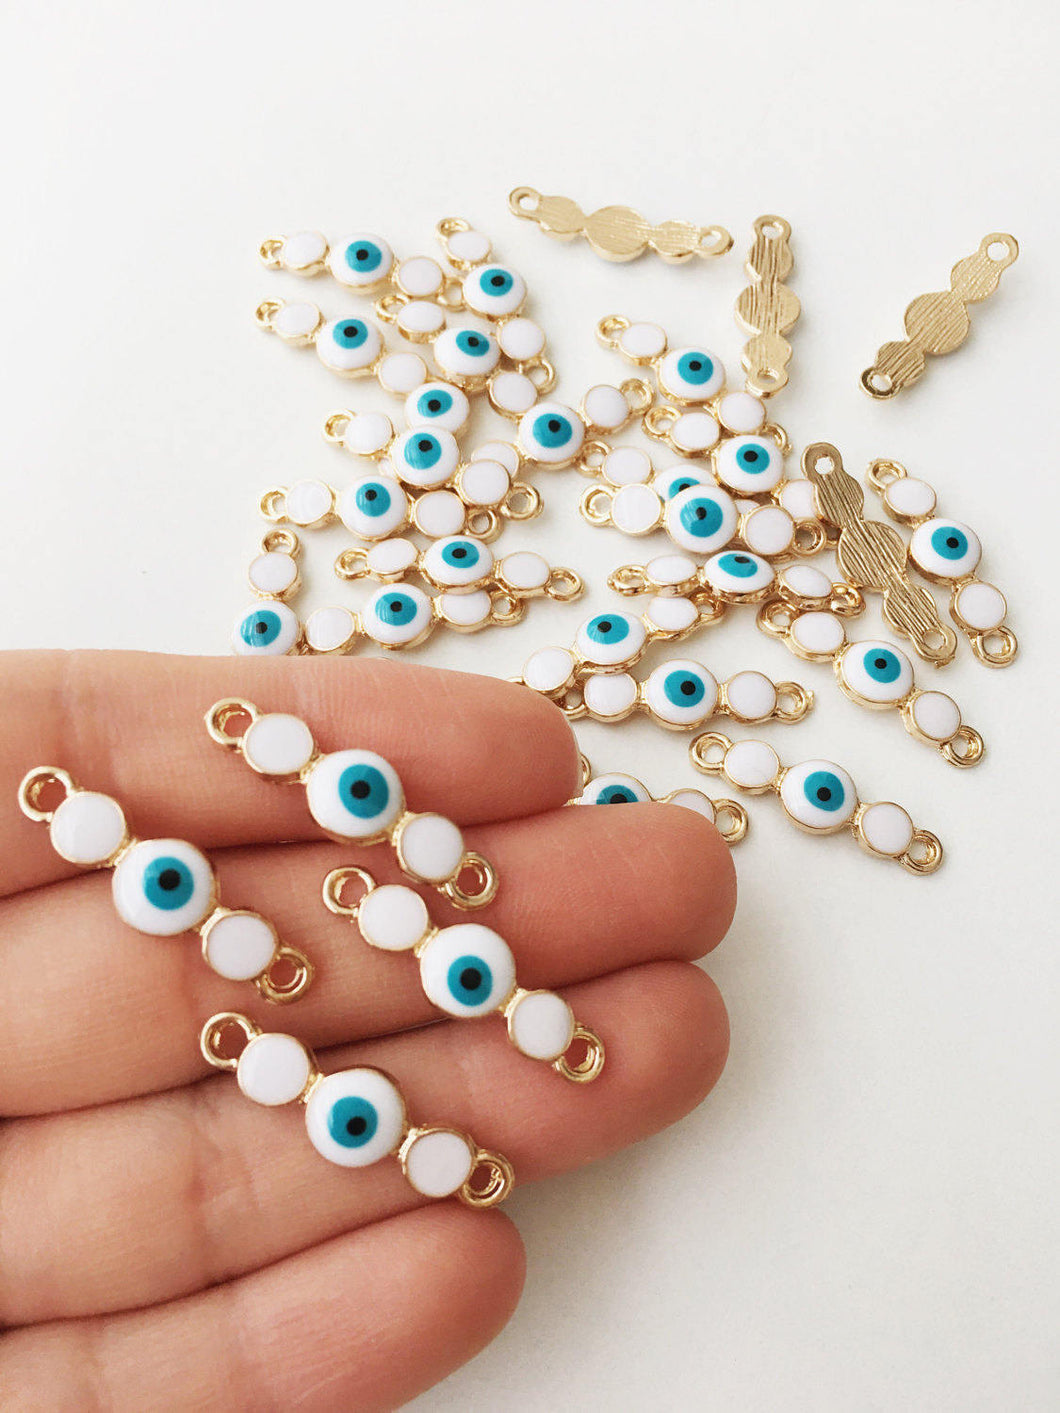 3 pcs Gold plated evil eye charm, white evil eye connector, evil eye pendant - Evileyefavor